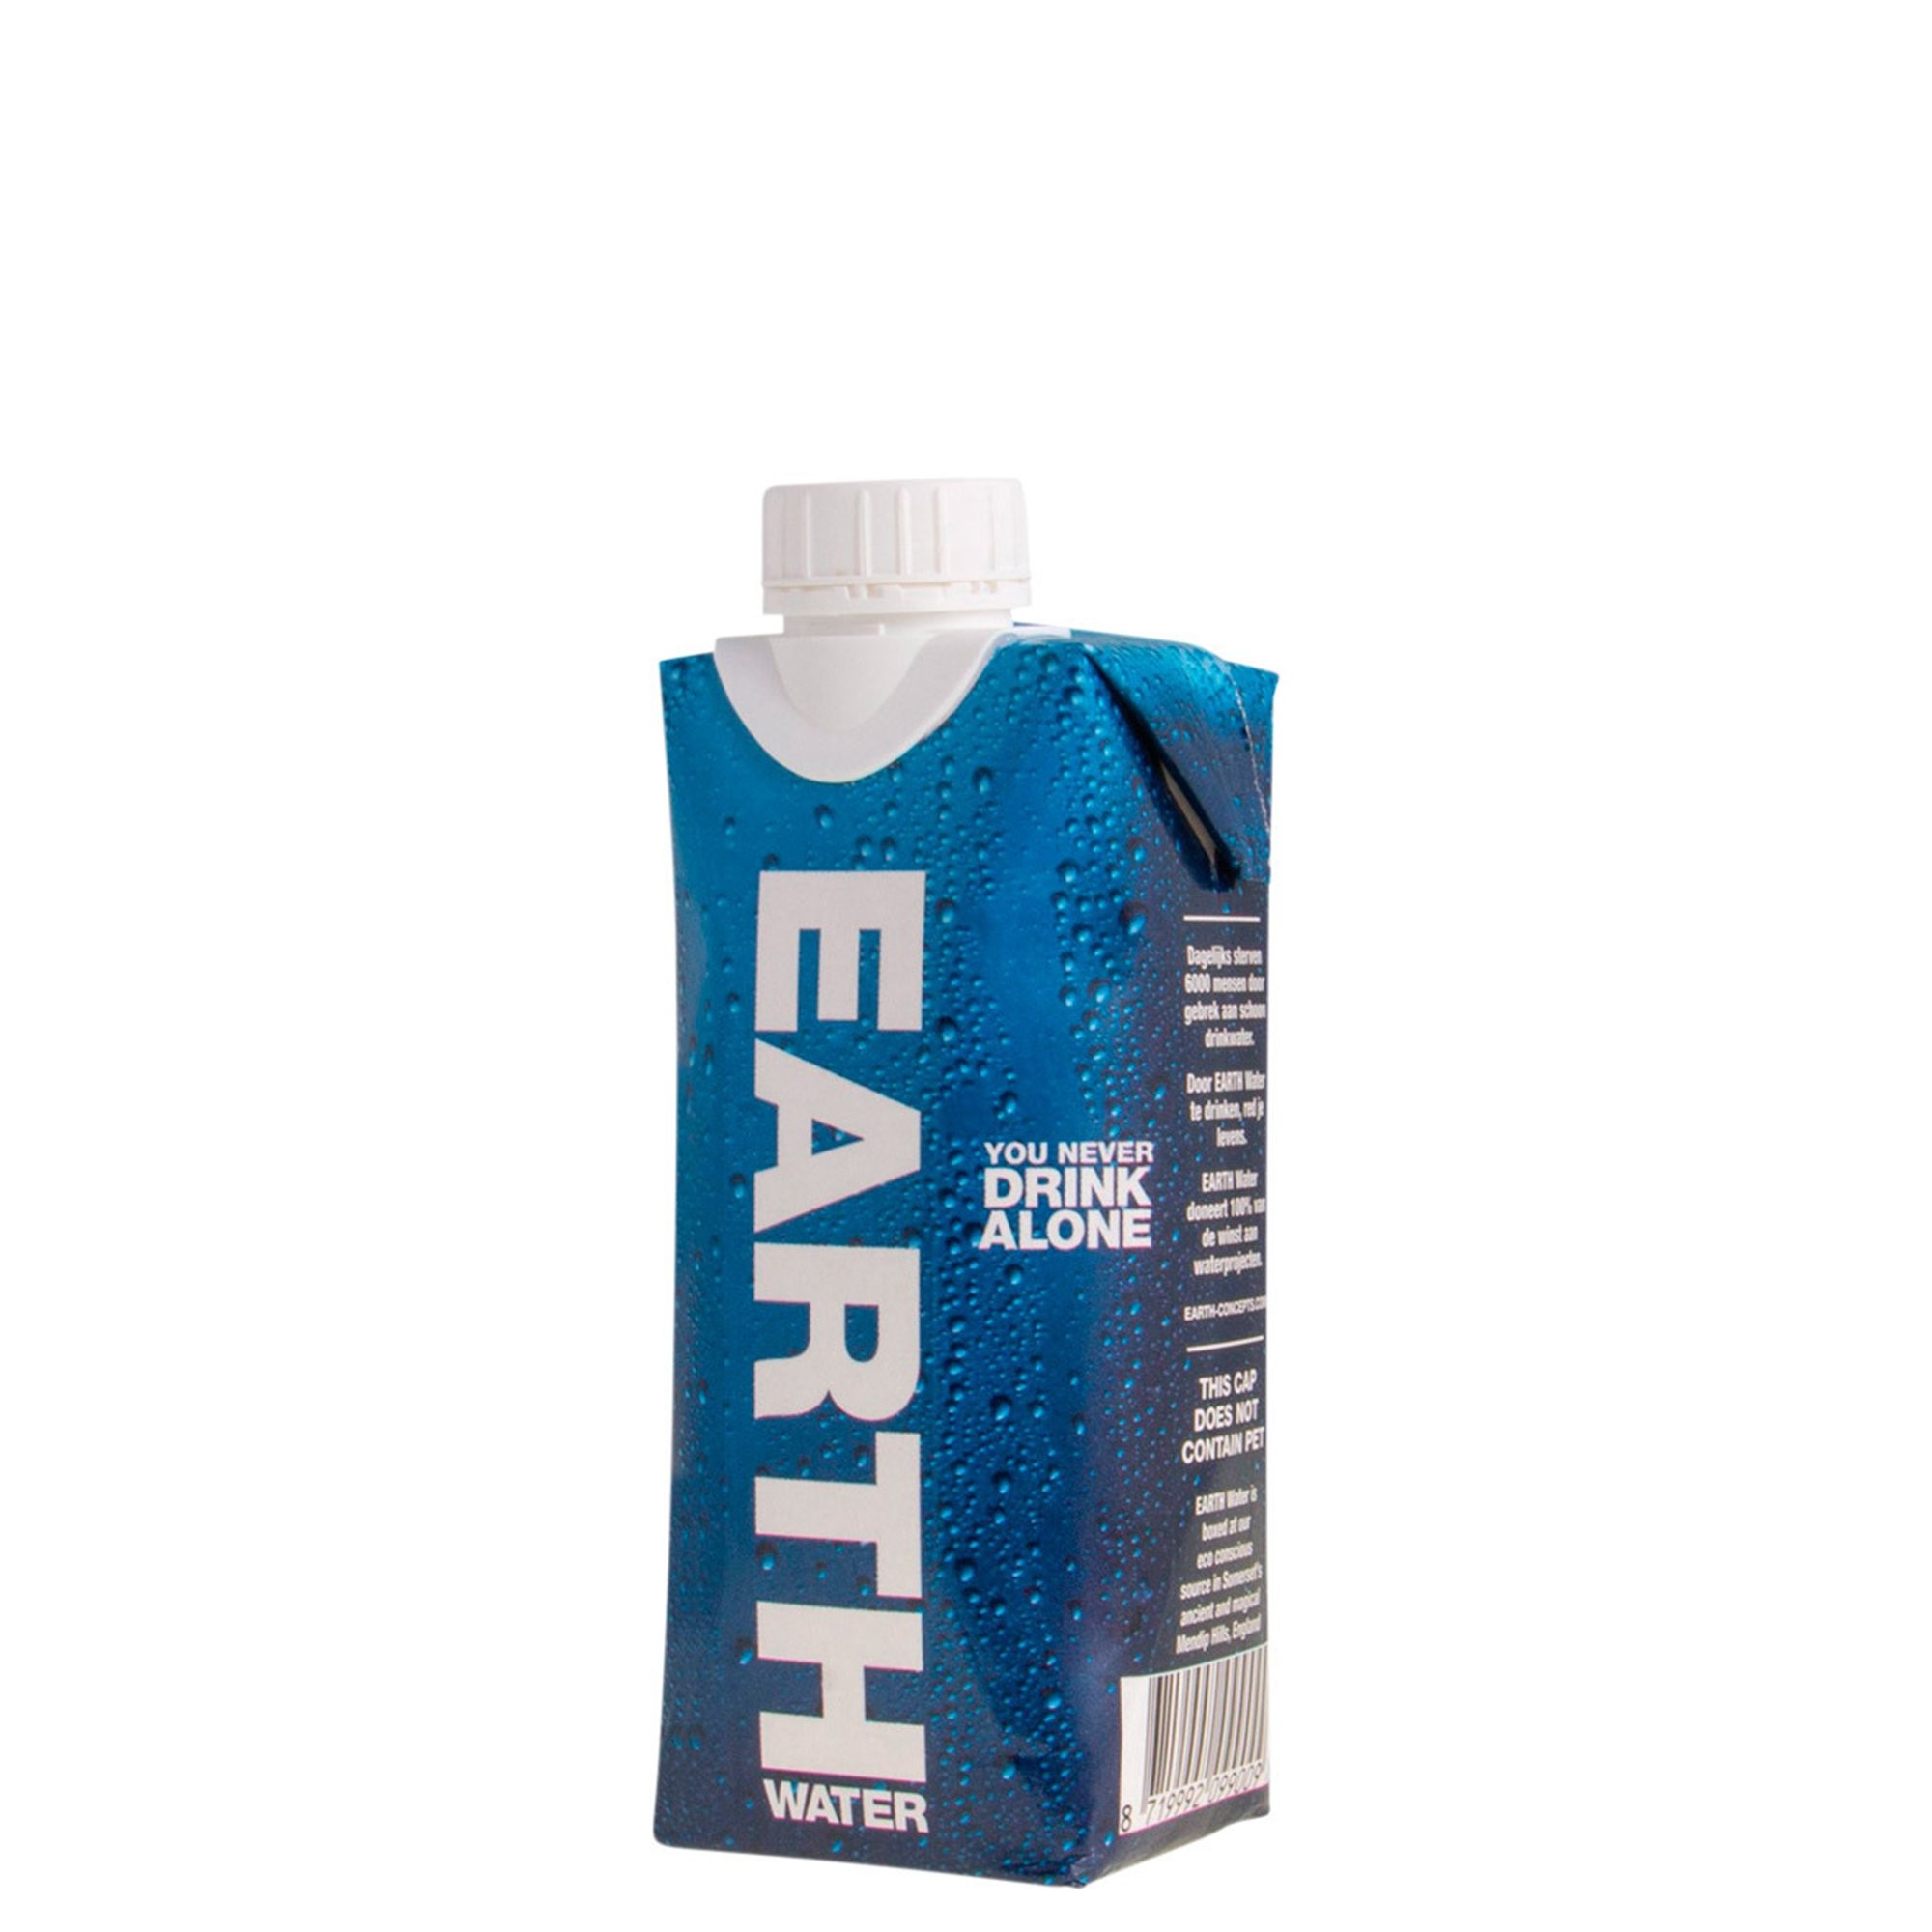 Earth water tetra pack 12st. van 330ml.